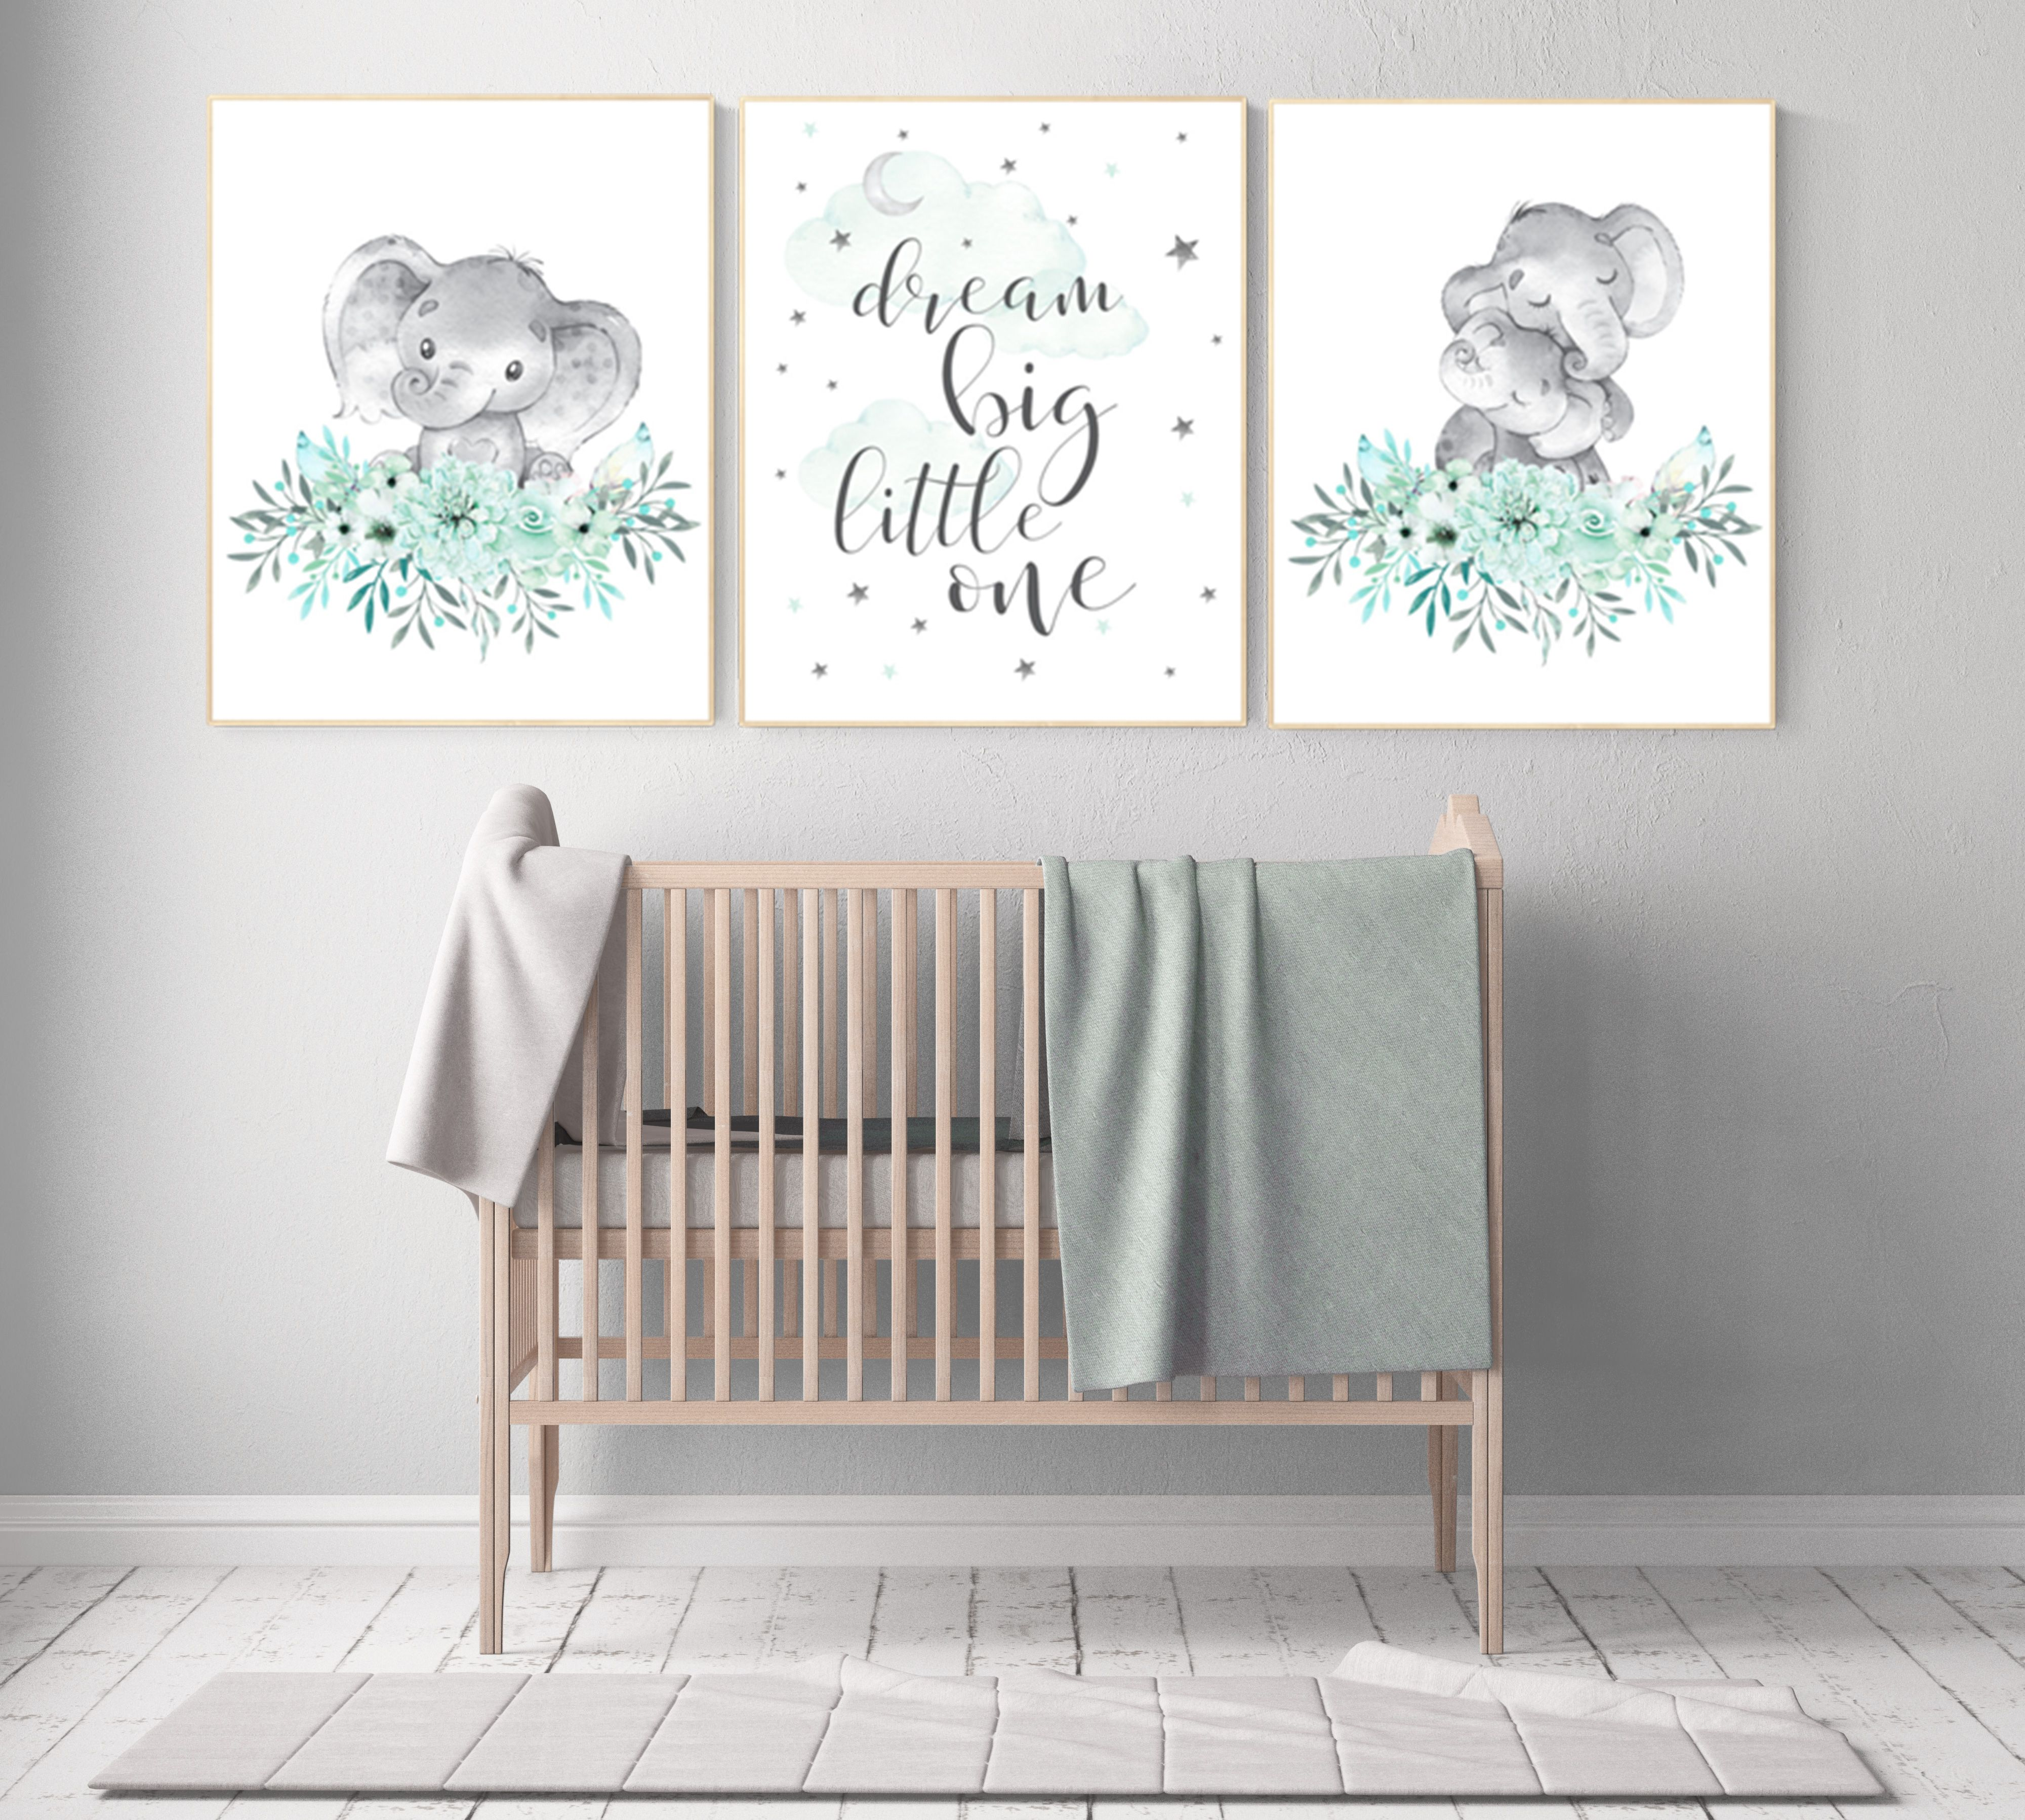 nursery pictures gender neutral Elephant themed baby room gold lavender baby room pictures mint green Mint purple gold nursery